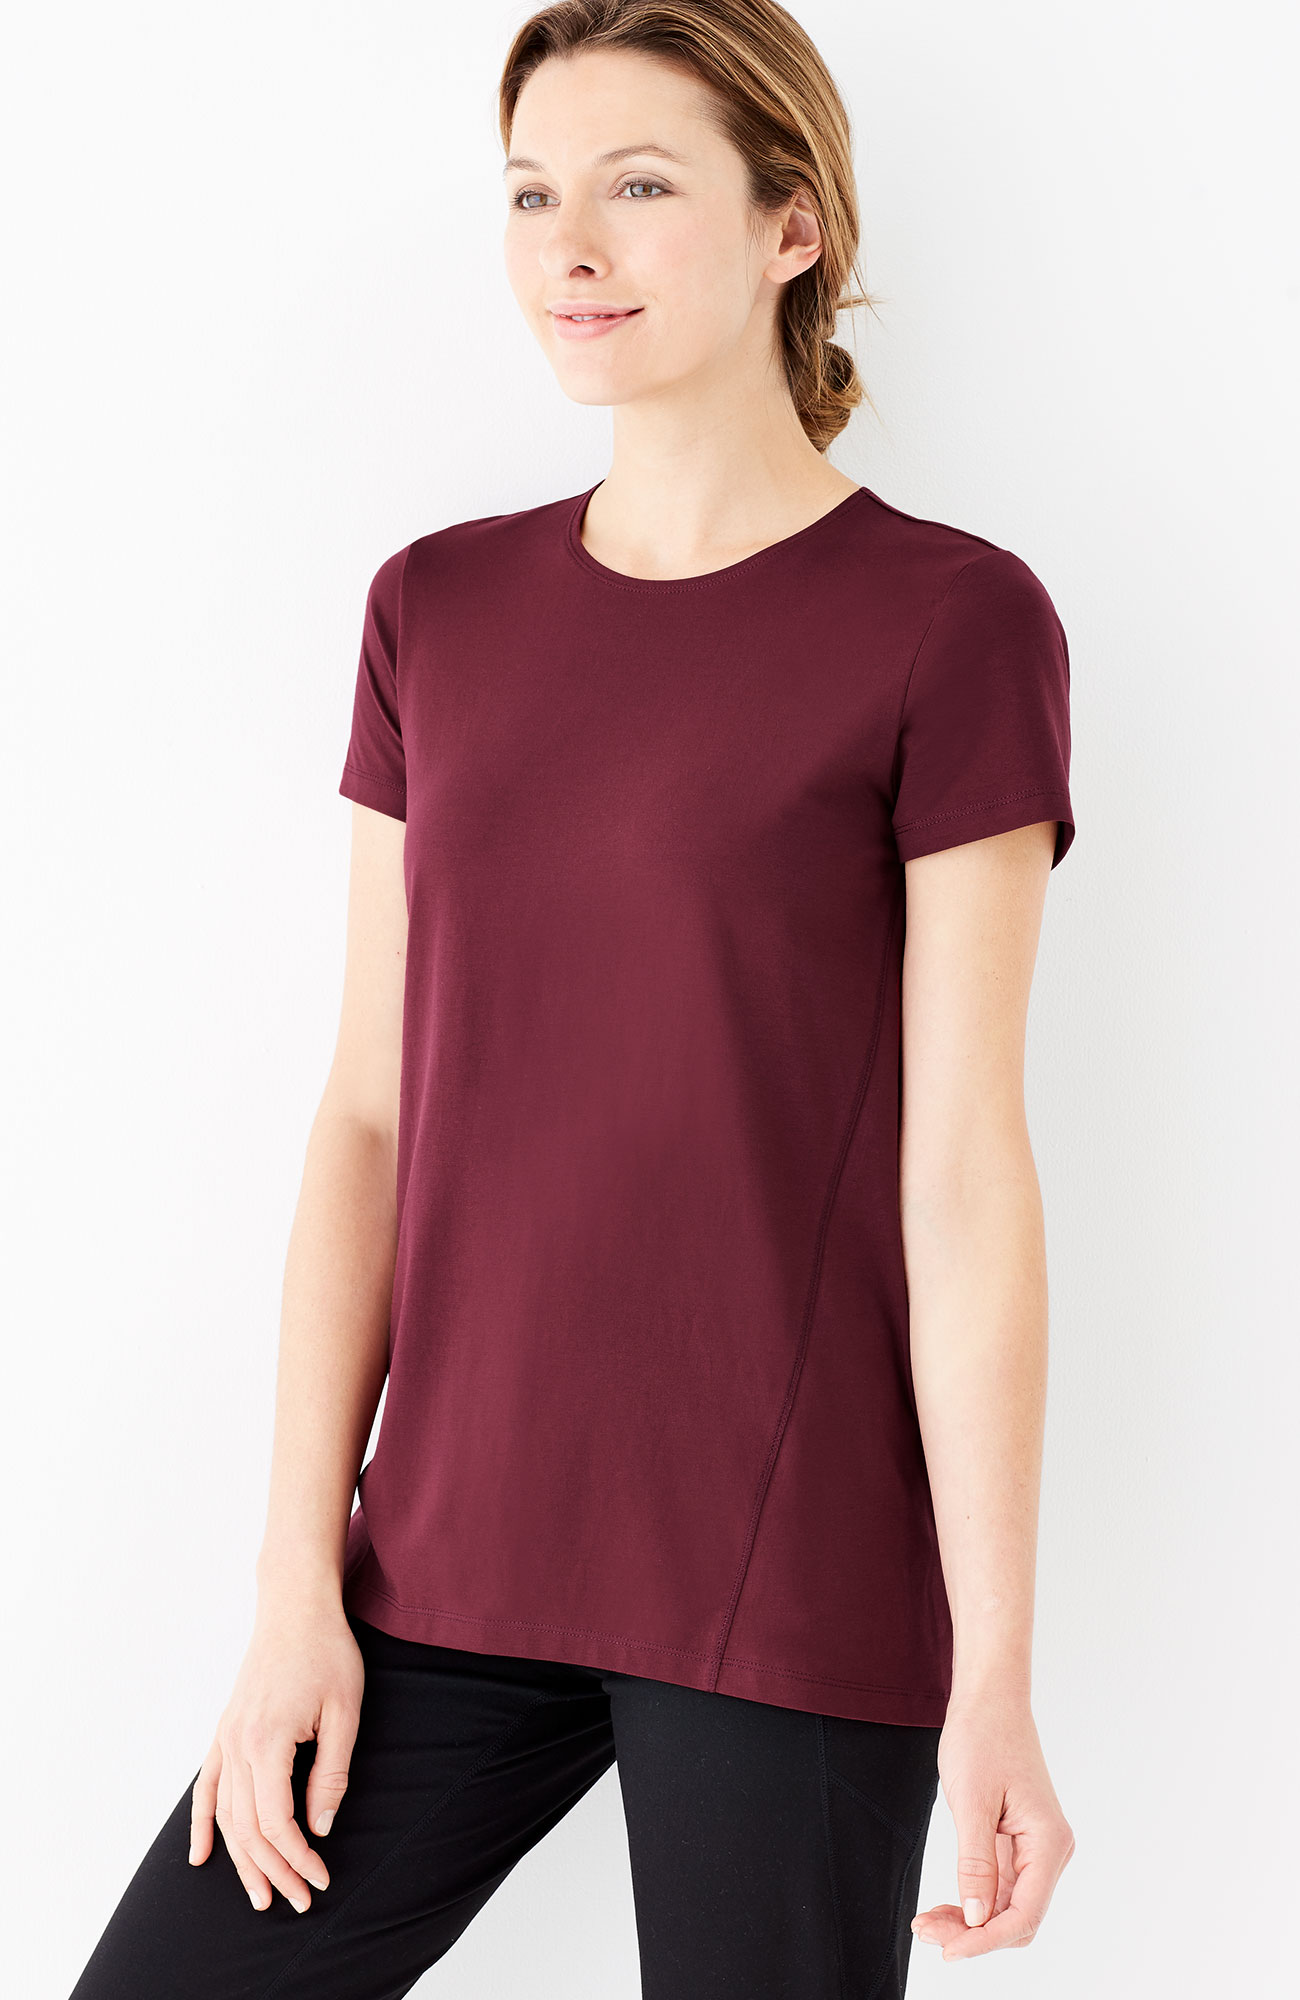 Pure Jill fit progress stretch tee